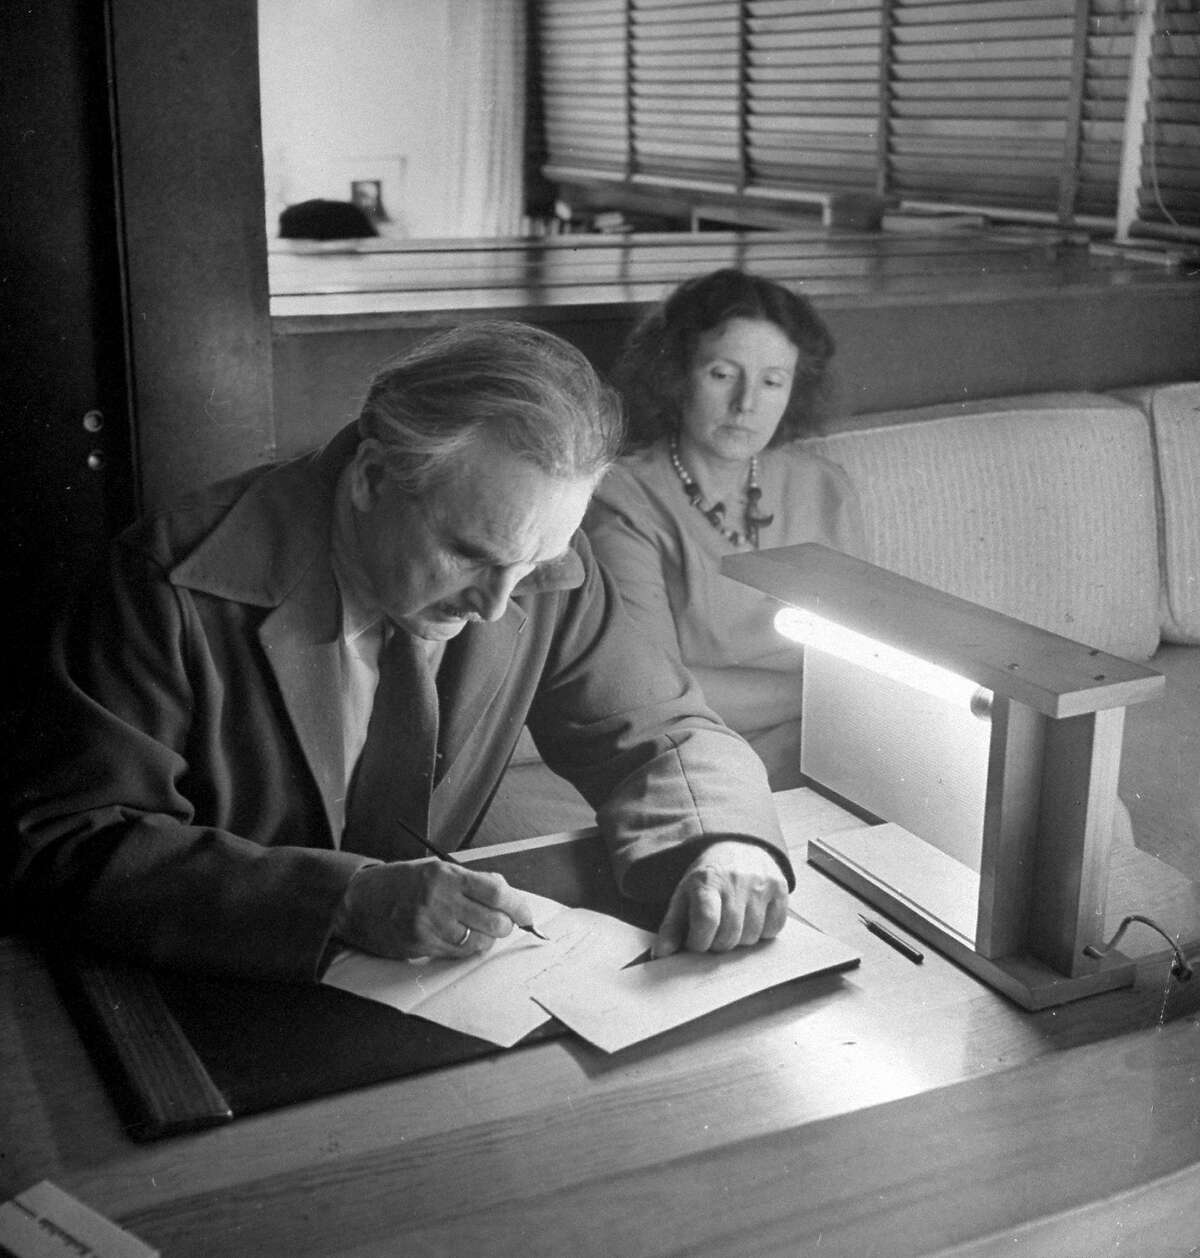 Architect Richard Neutra sitting with wife at home, working on lighting. (Photo by Ralph Crane/The LIFE Images Collection/Getty Images)